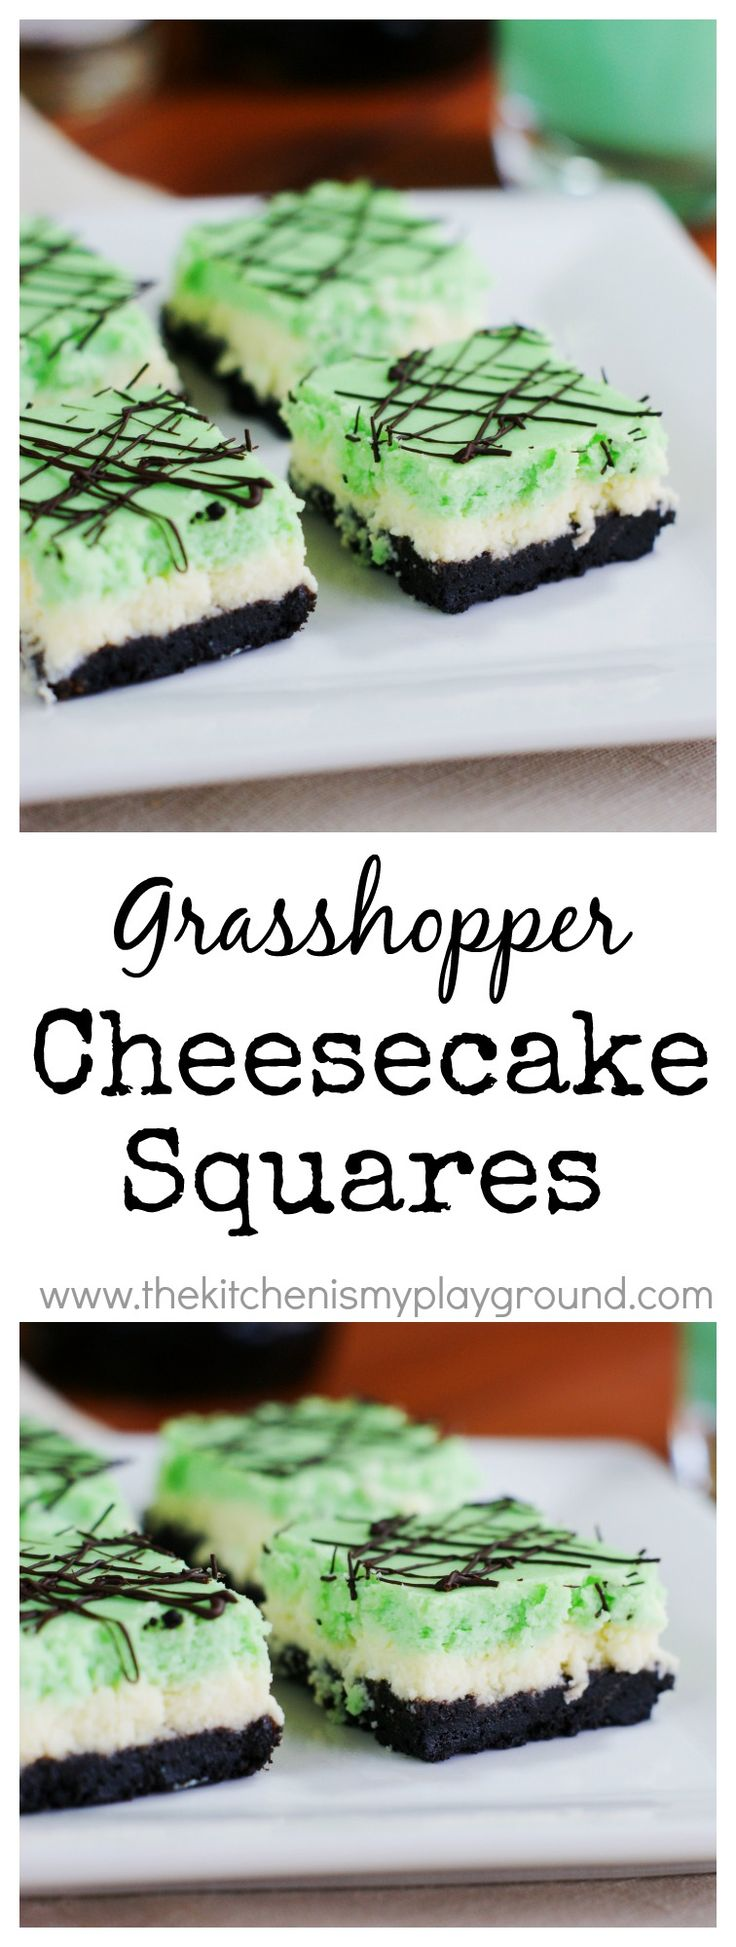 Grasshopper Cheesecake Squares - the flavors of the classic cocktail in a beautifully layered cheesecake treat.    www.thekitchenismyplayground.com